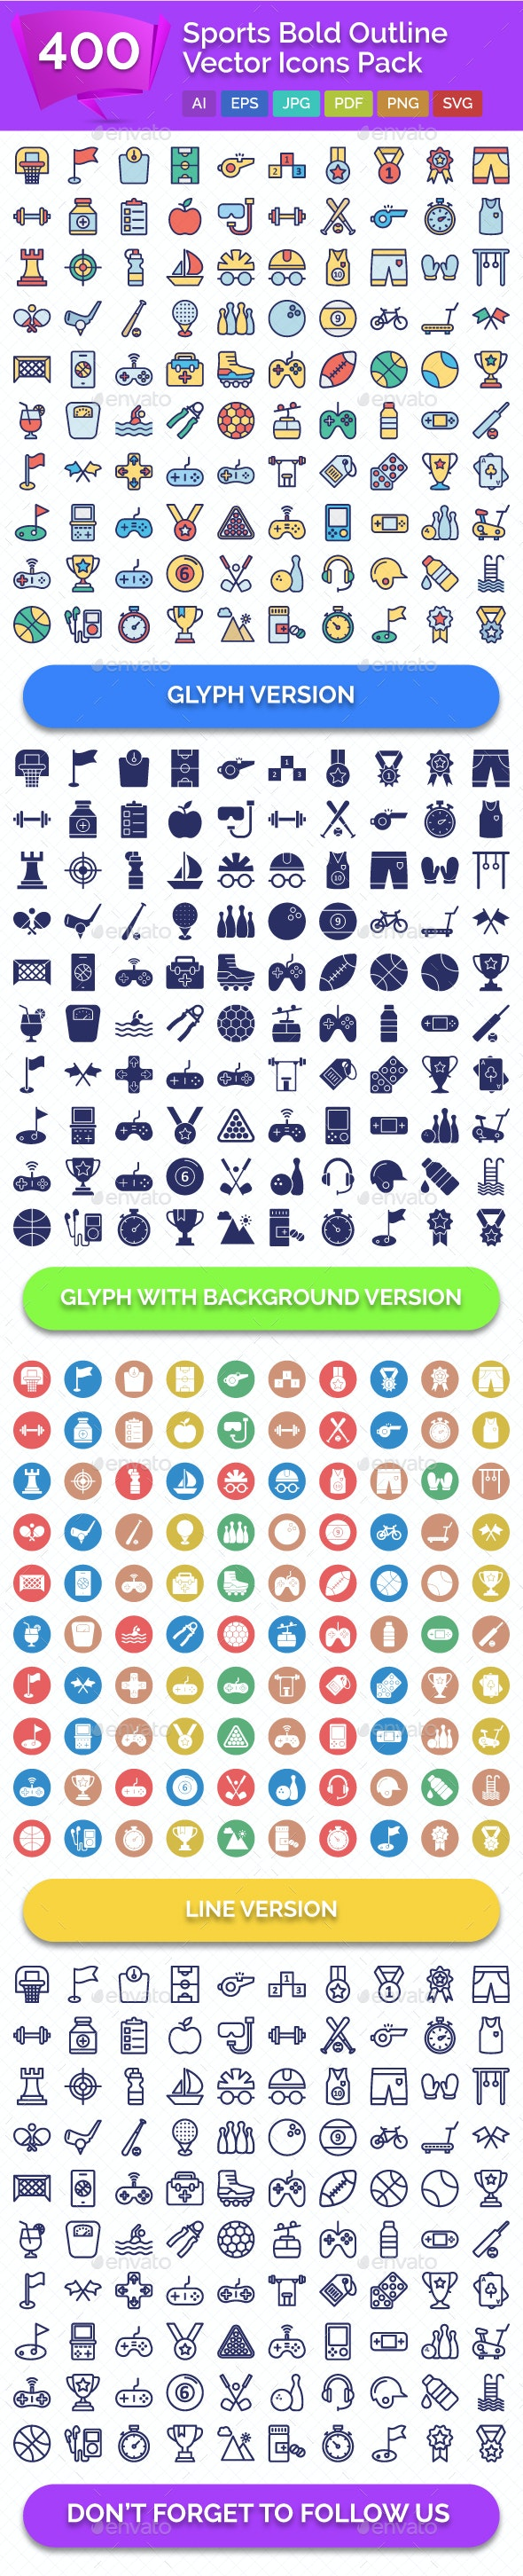 400 Sports Bold Outline Vector Icons Pack - Icons